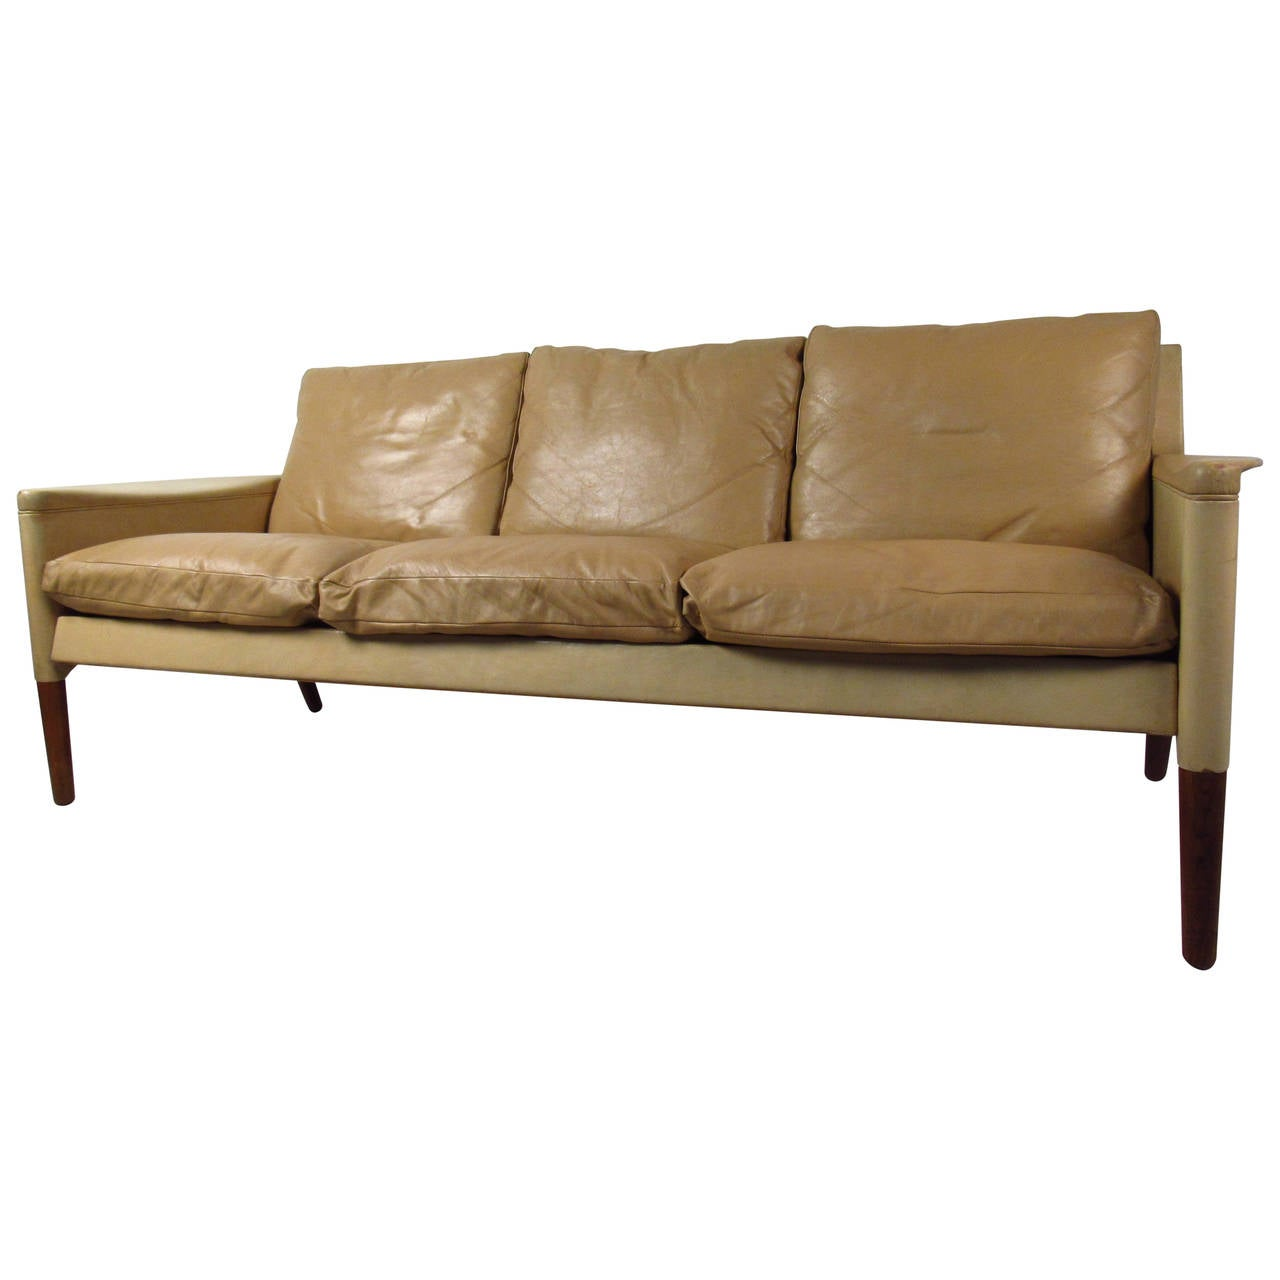 Danish modern leather sofa for sale at 1stdibs for Modern sofas for sale